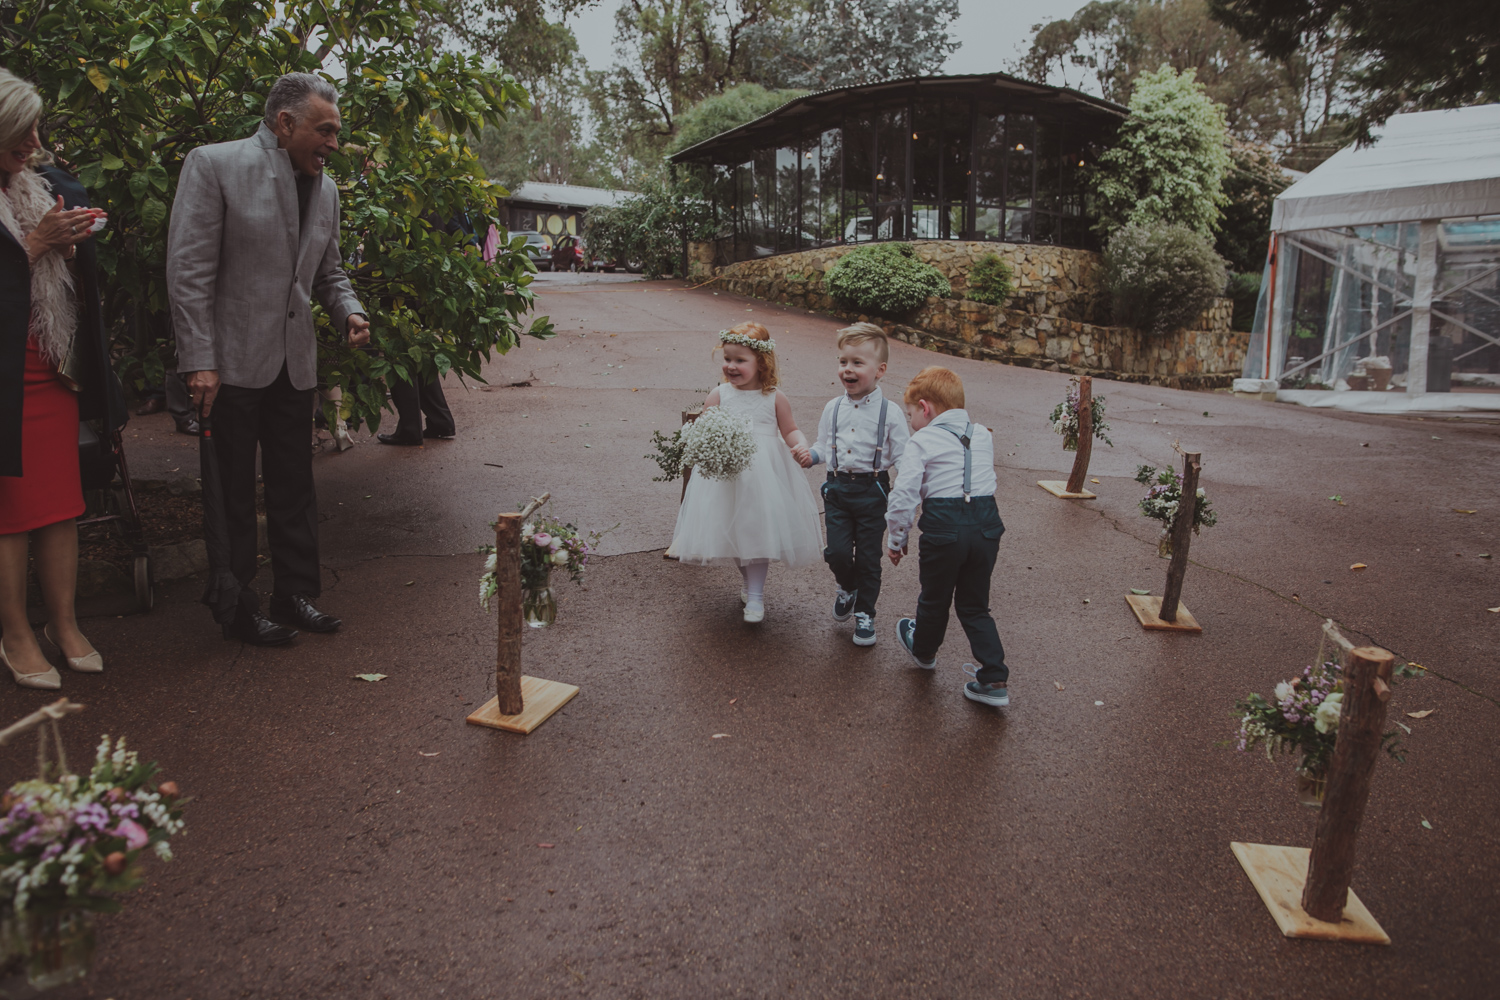 pageboys walk up the aisle